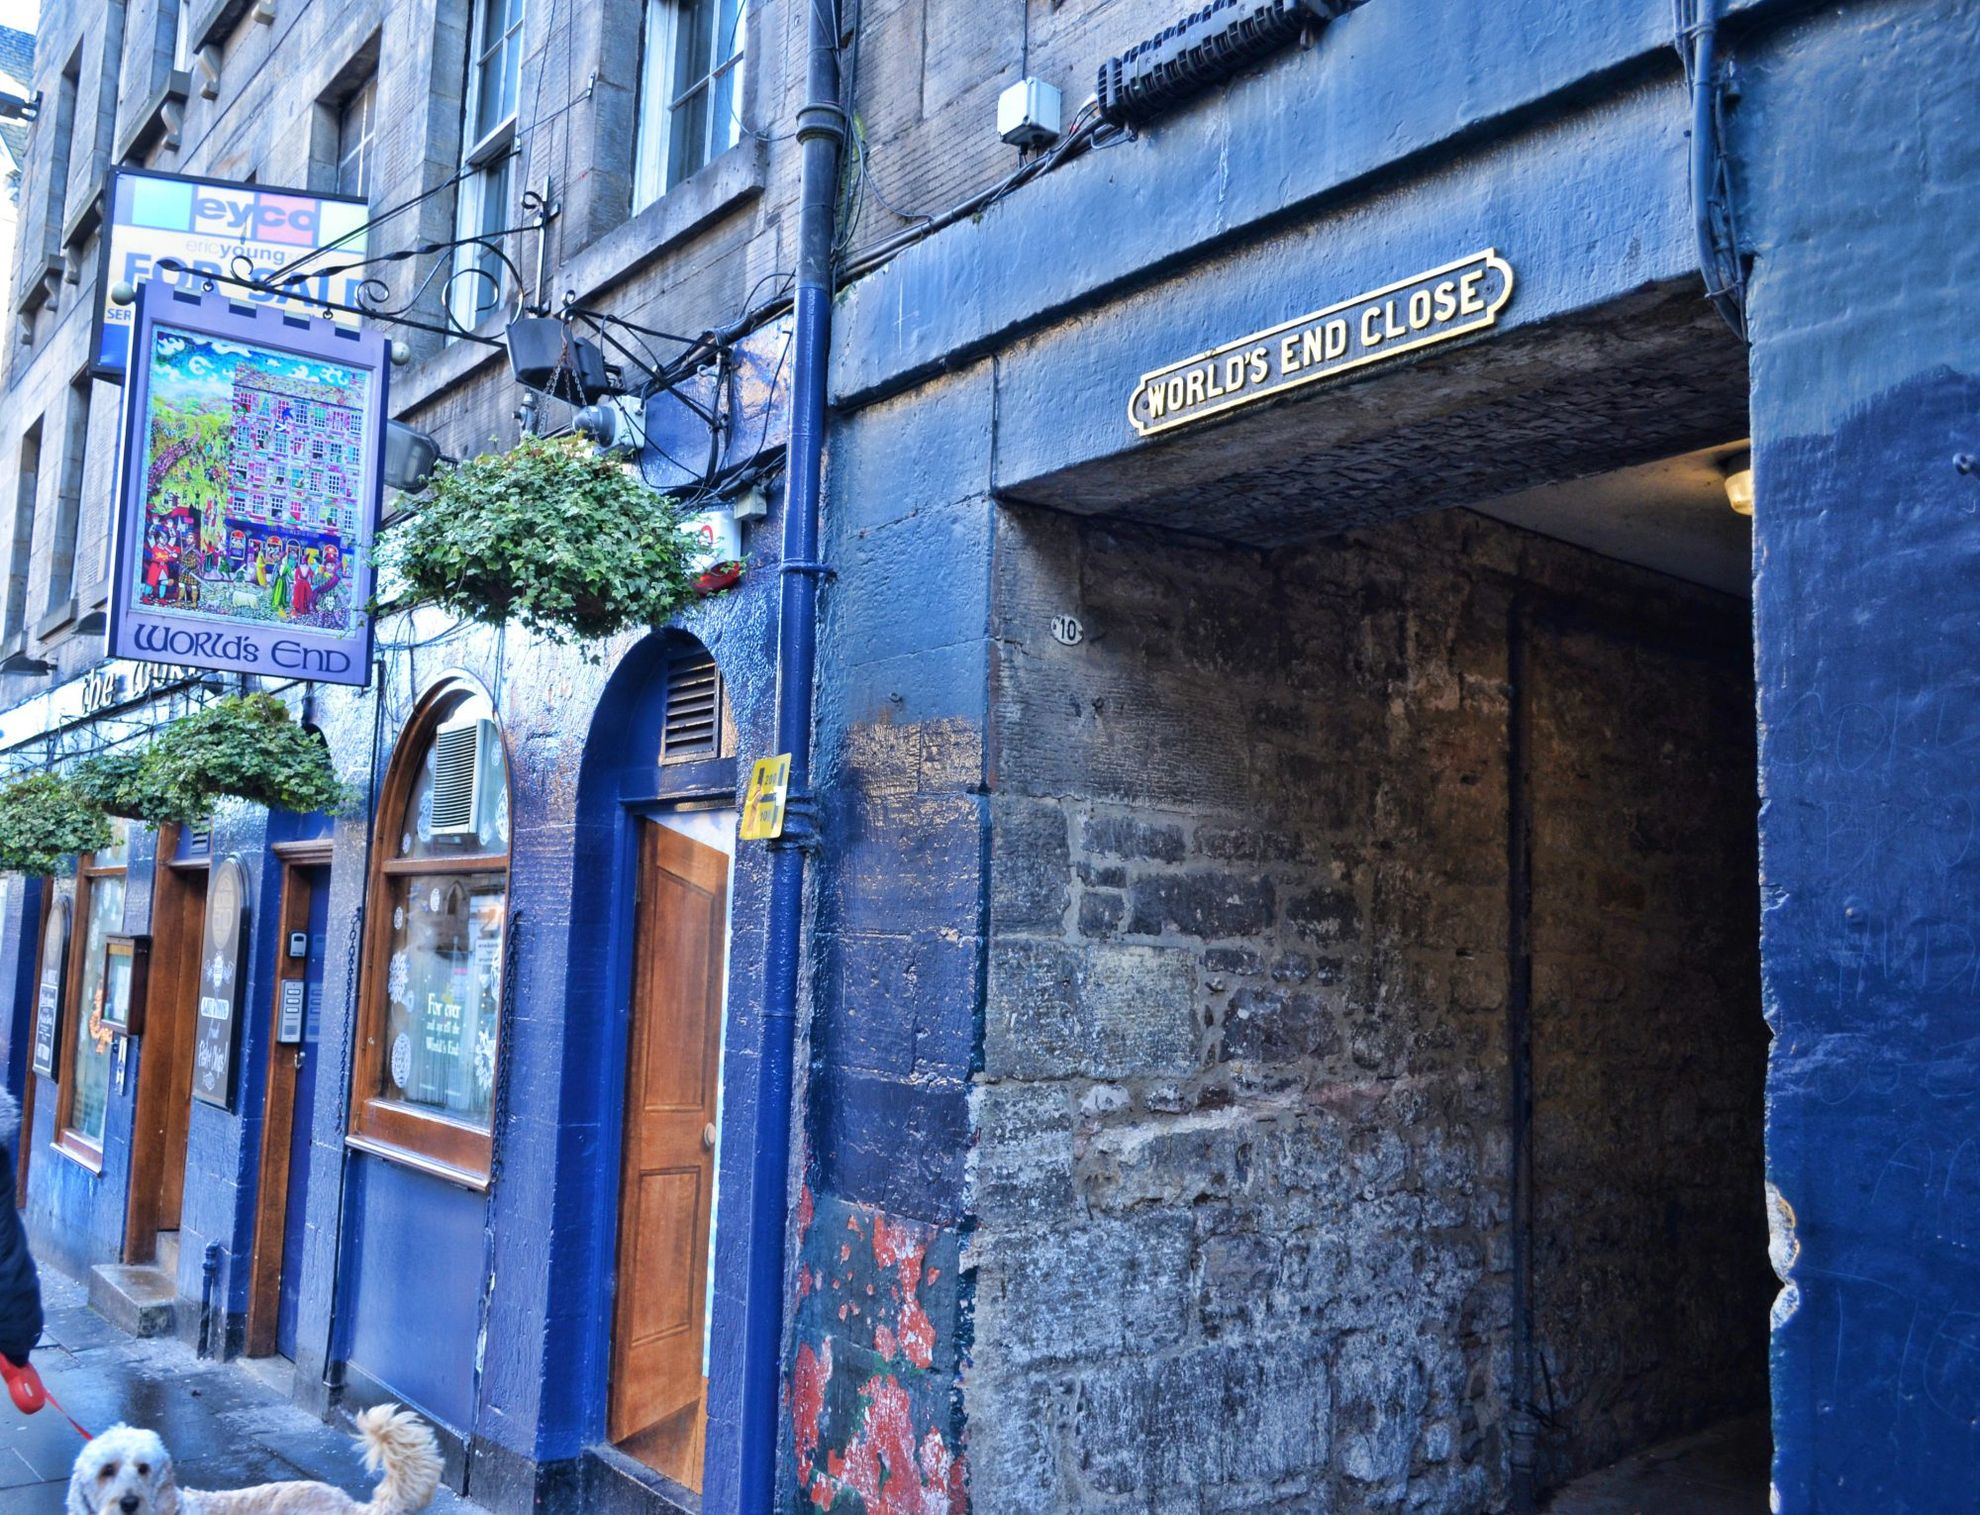 edimburgo, the world's end close